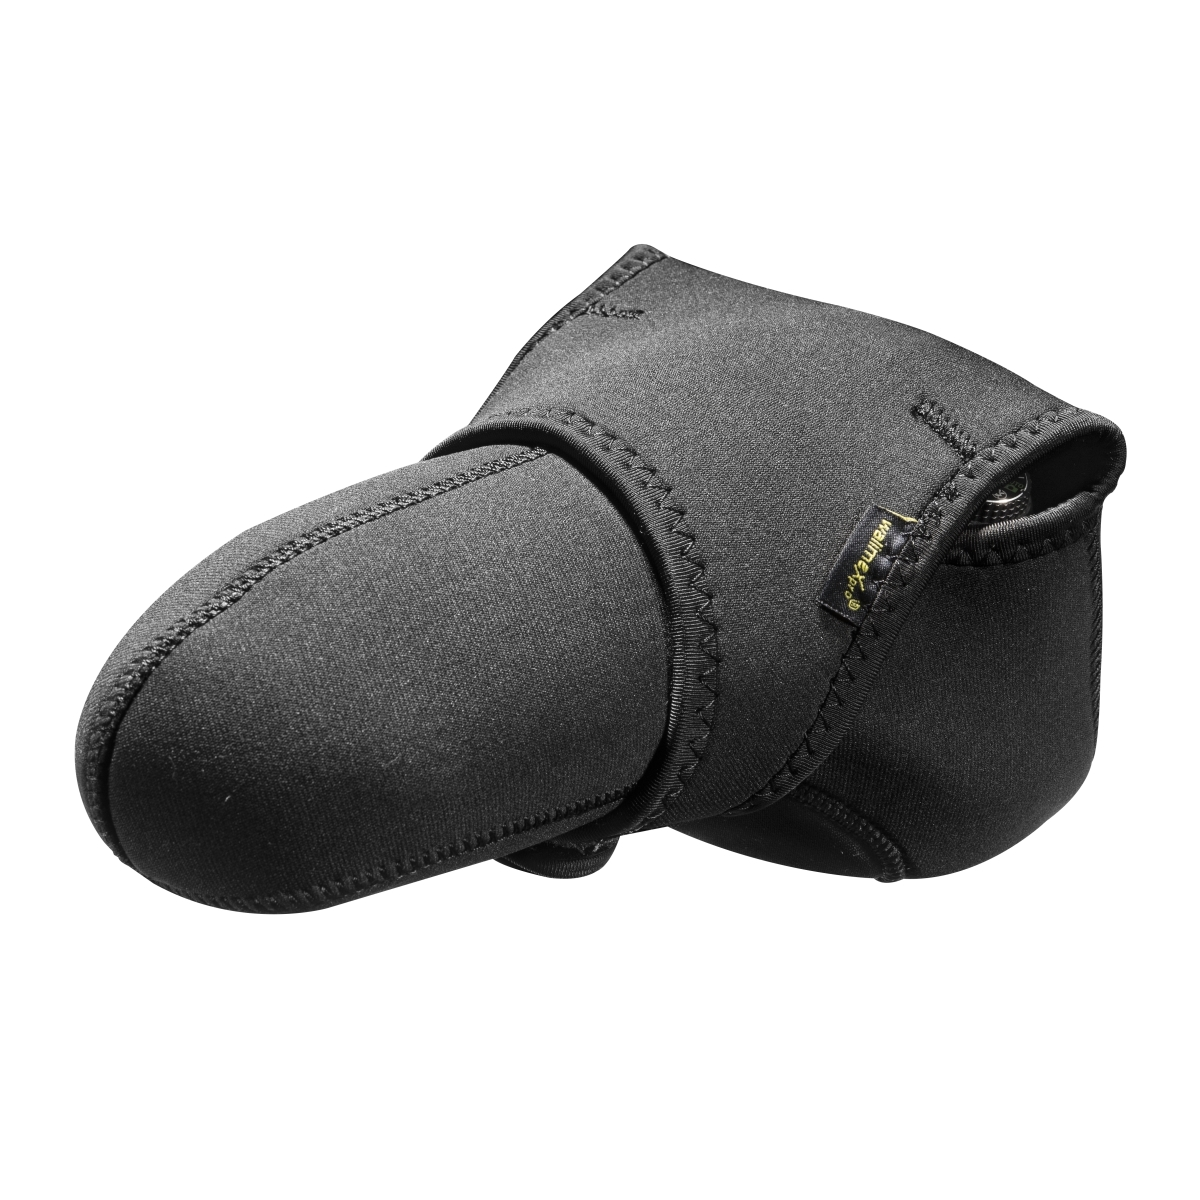 Walimex pro Neoprene Camera Protection Cover L